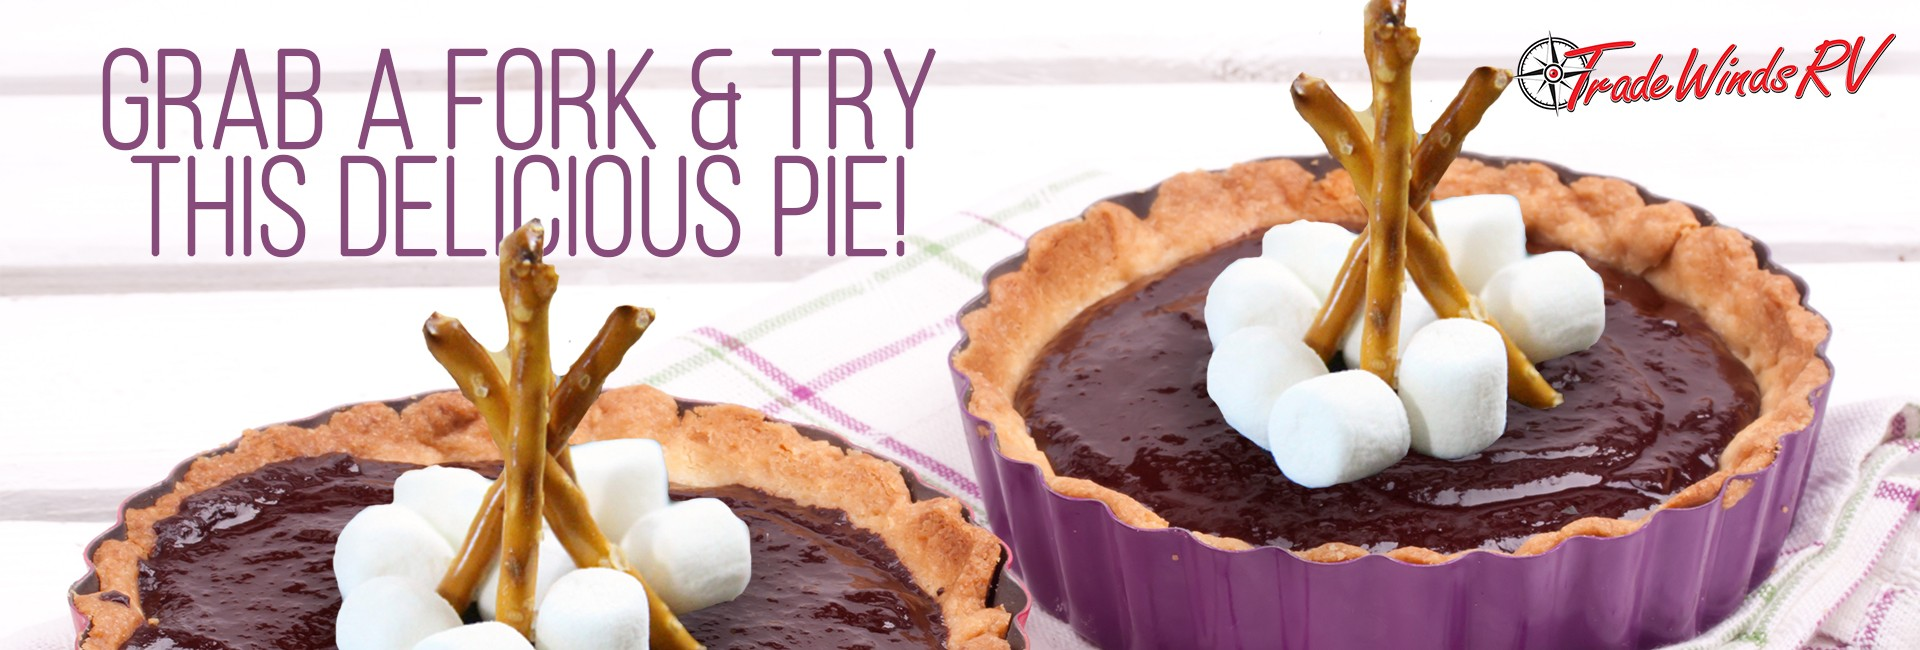 grab a fork and try this delicious pie